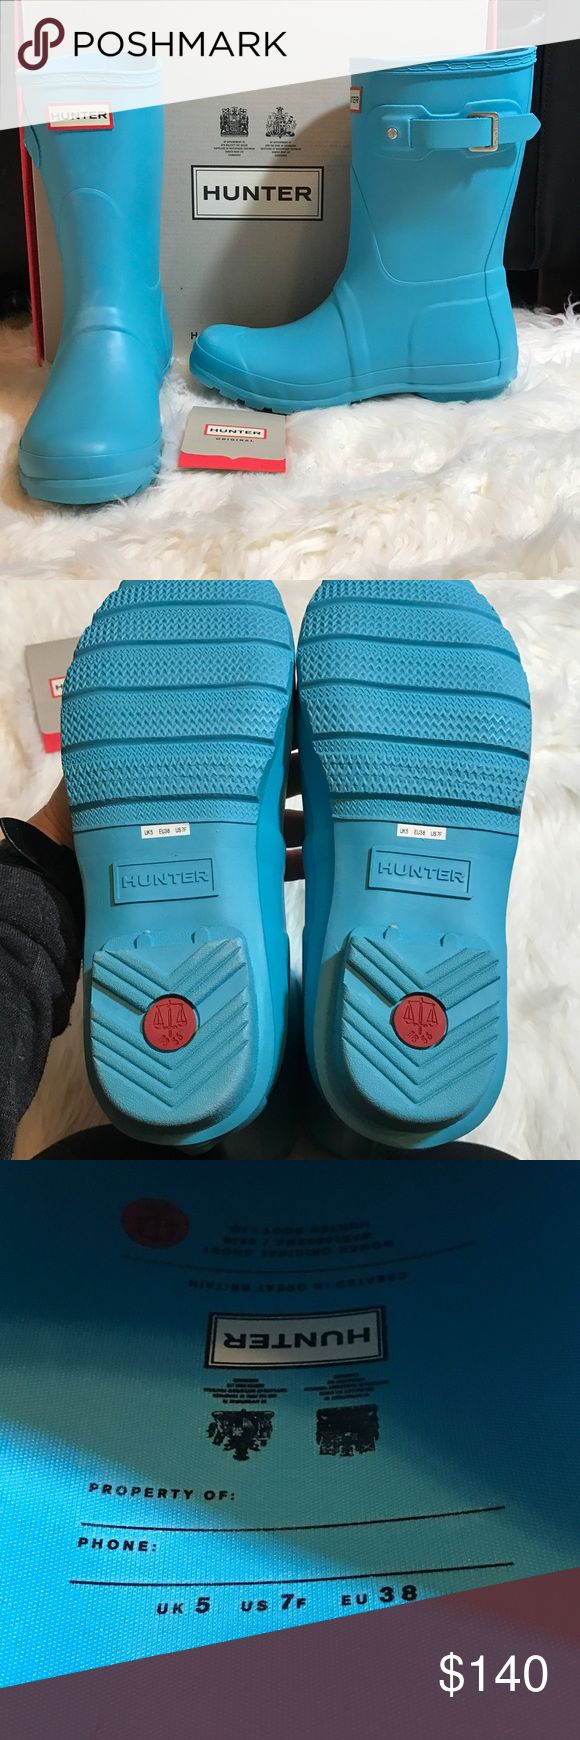 HUNTER Short Original boot Sky Blue 7 These are brand new never tried on!  Comes with care card and original box. Awesome Sky blue color! US women's 7. Offers Welcome! Hunter Shoes Winter & Rain Boots